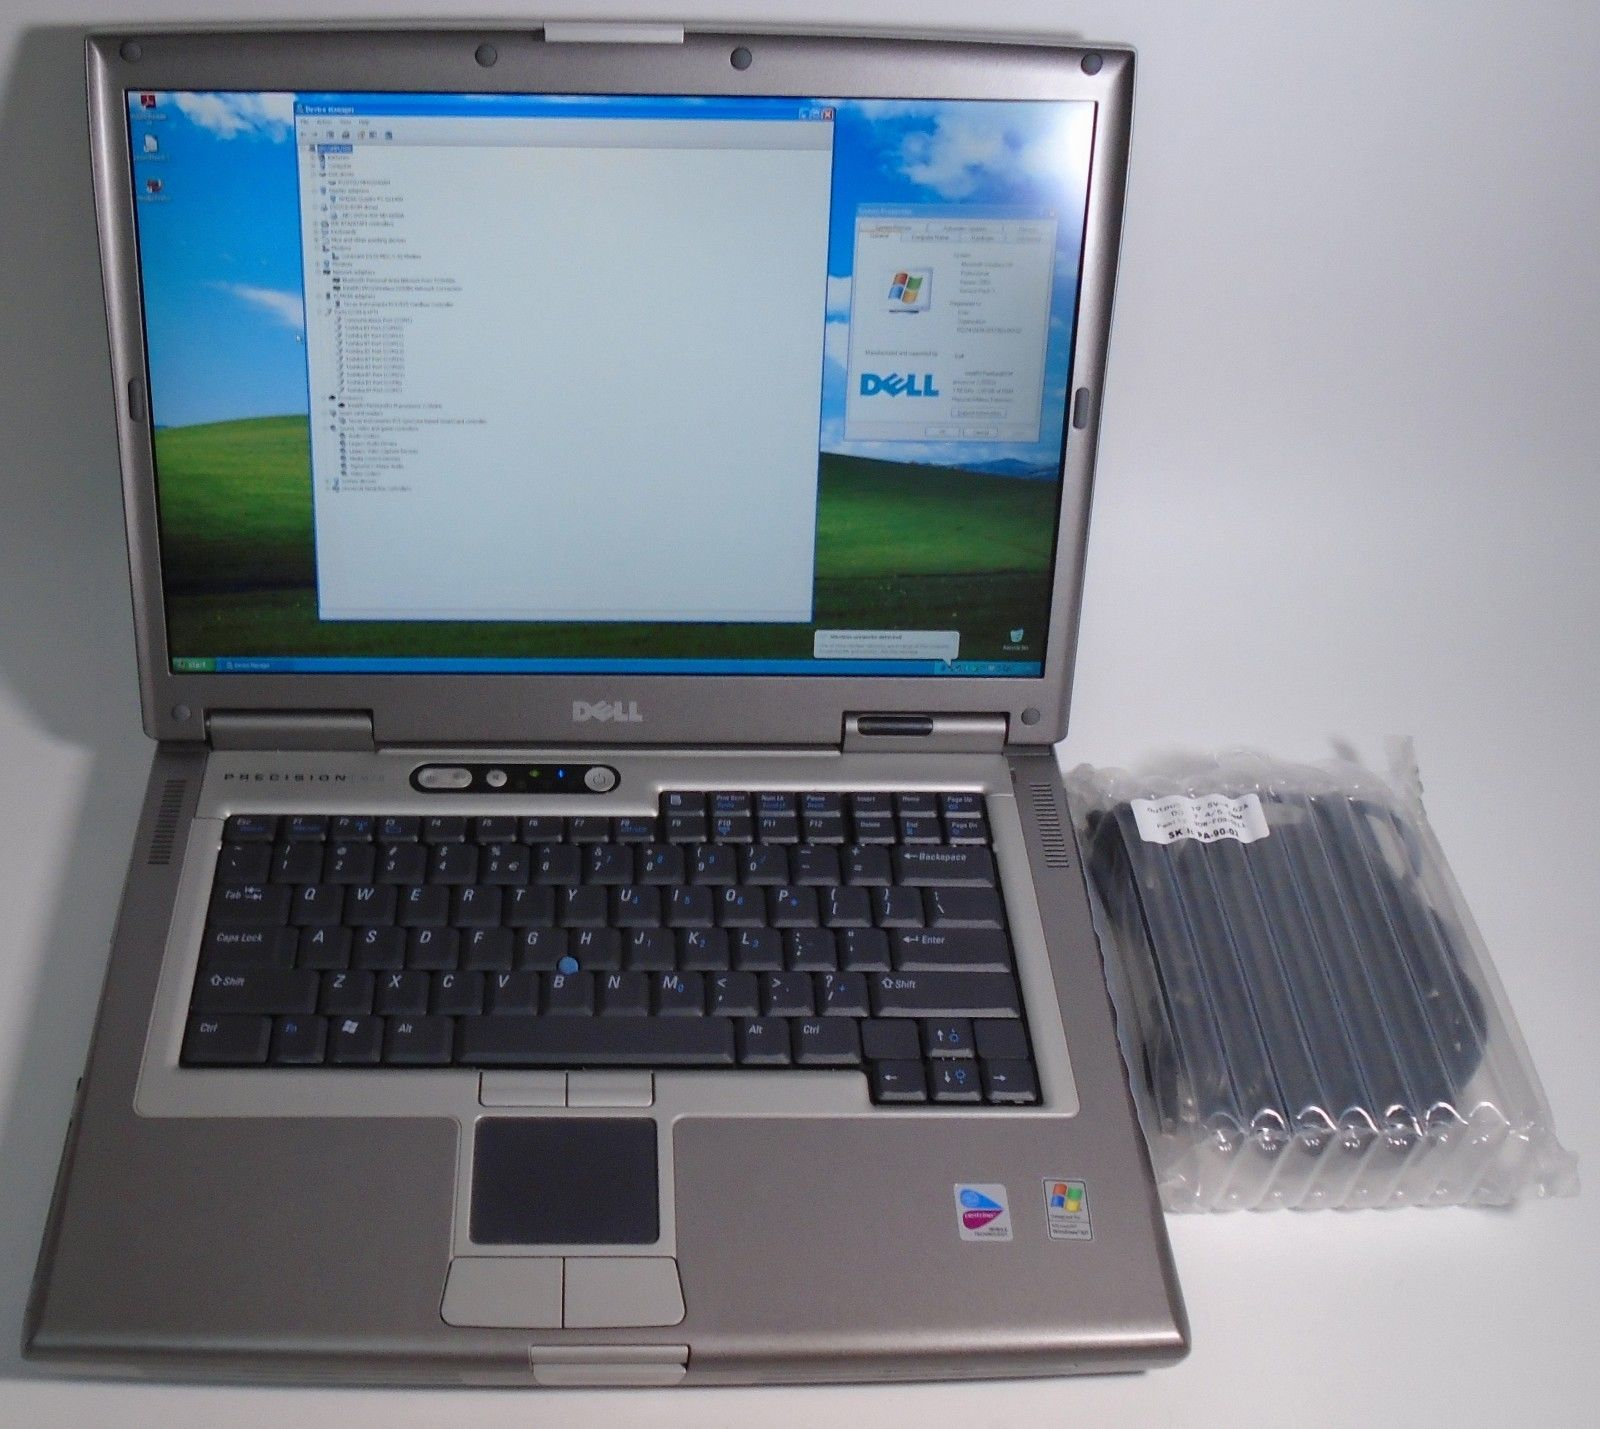 Dell Precision M70 Audio Driver Windows 7 - galinoa